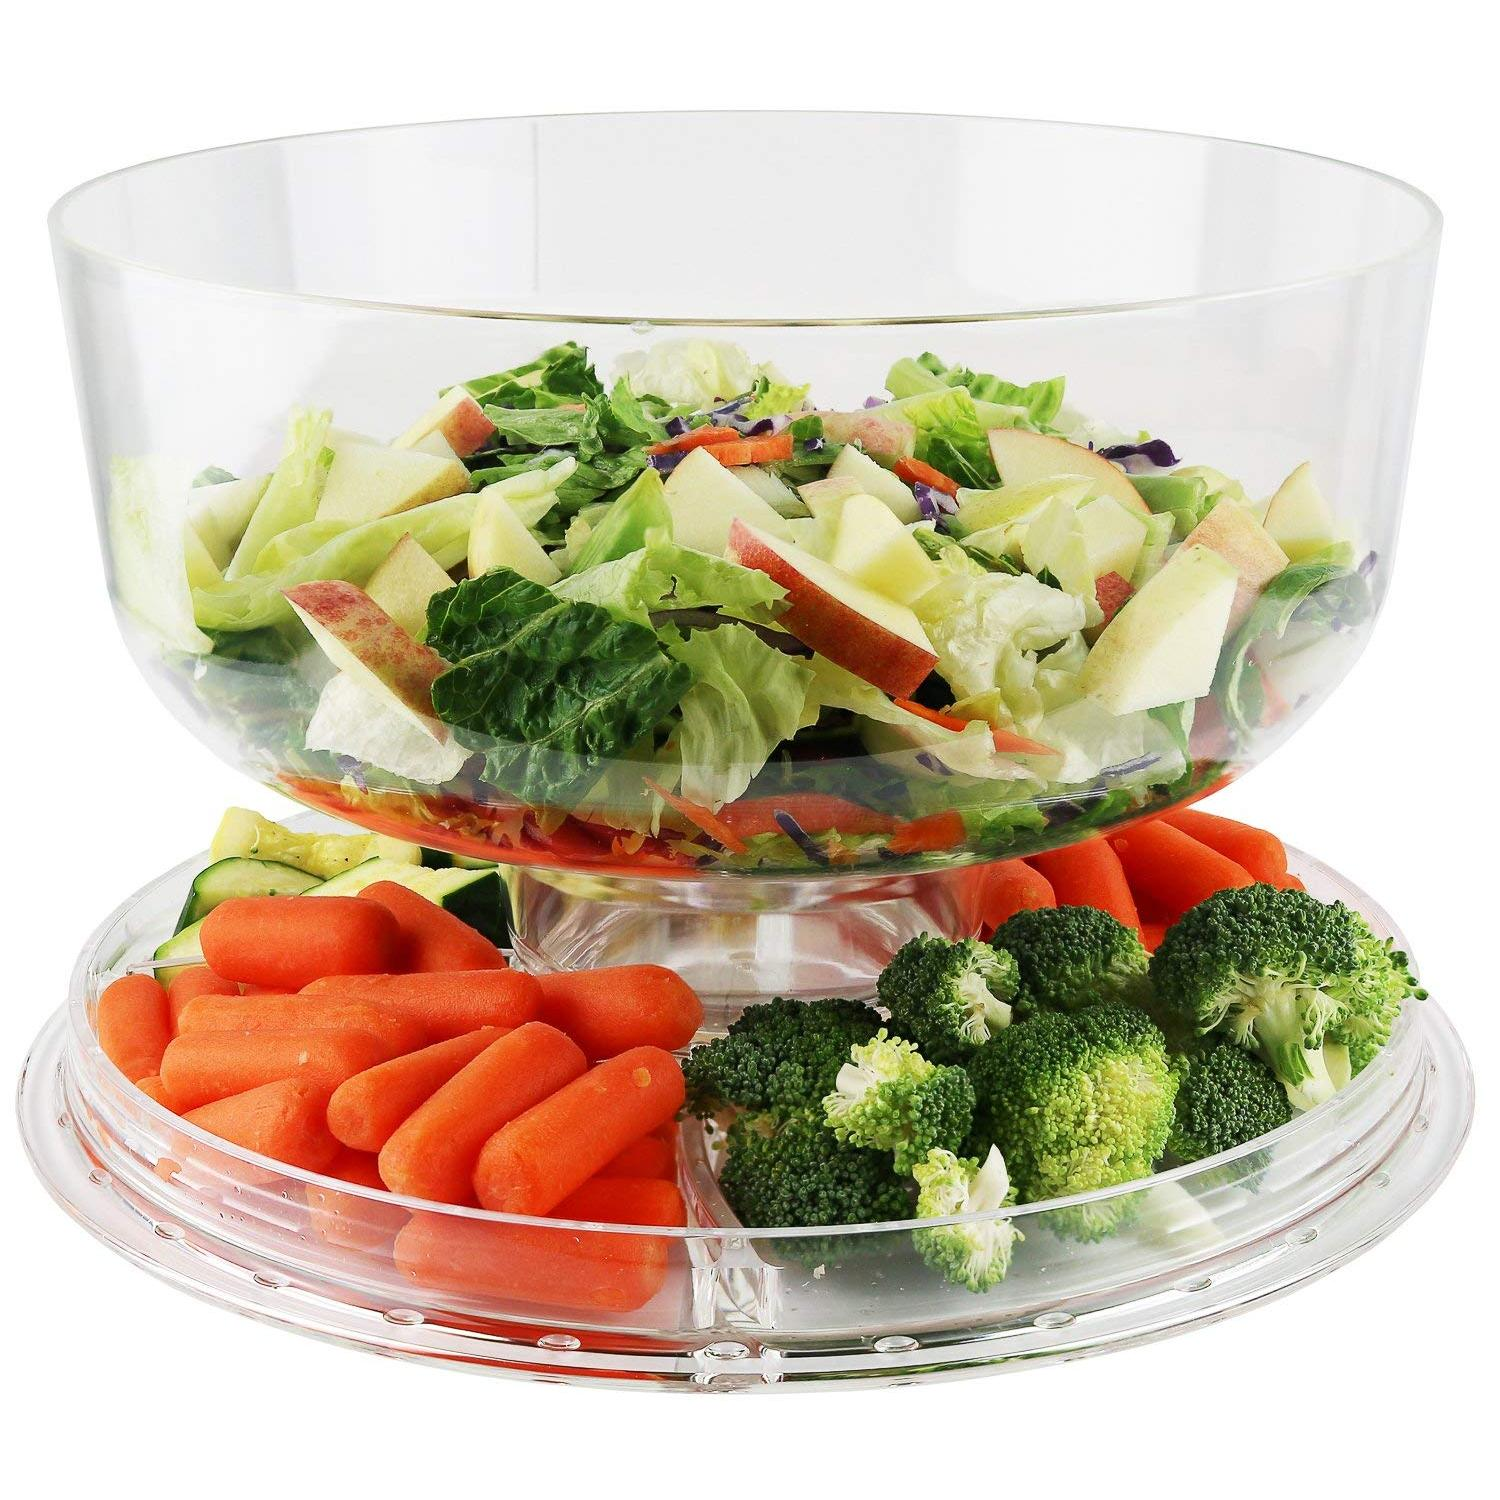 Multi-Function Cake Stand 6-In-1 Salad Serving Set With 5 Compartment Tray And Center Dip Bowl By Kitchen+ware.